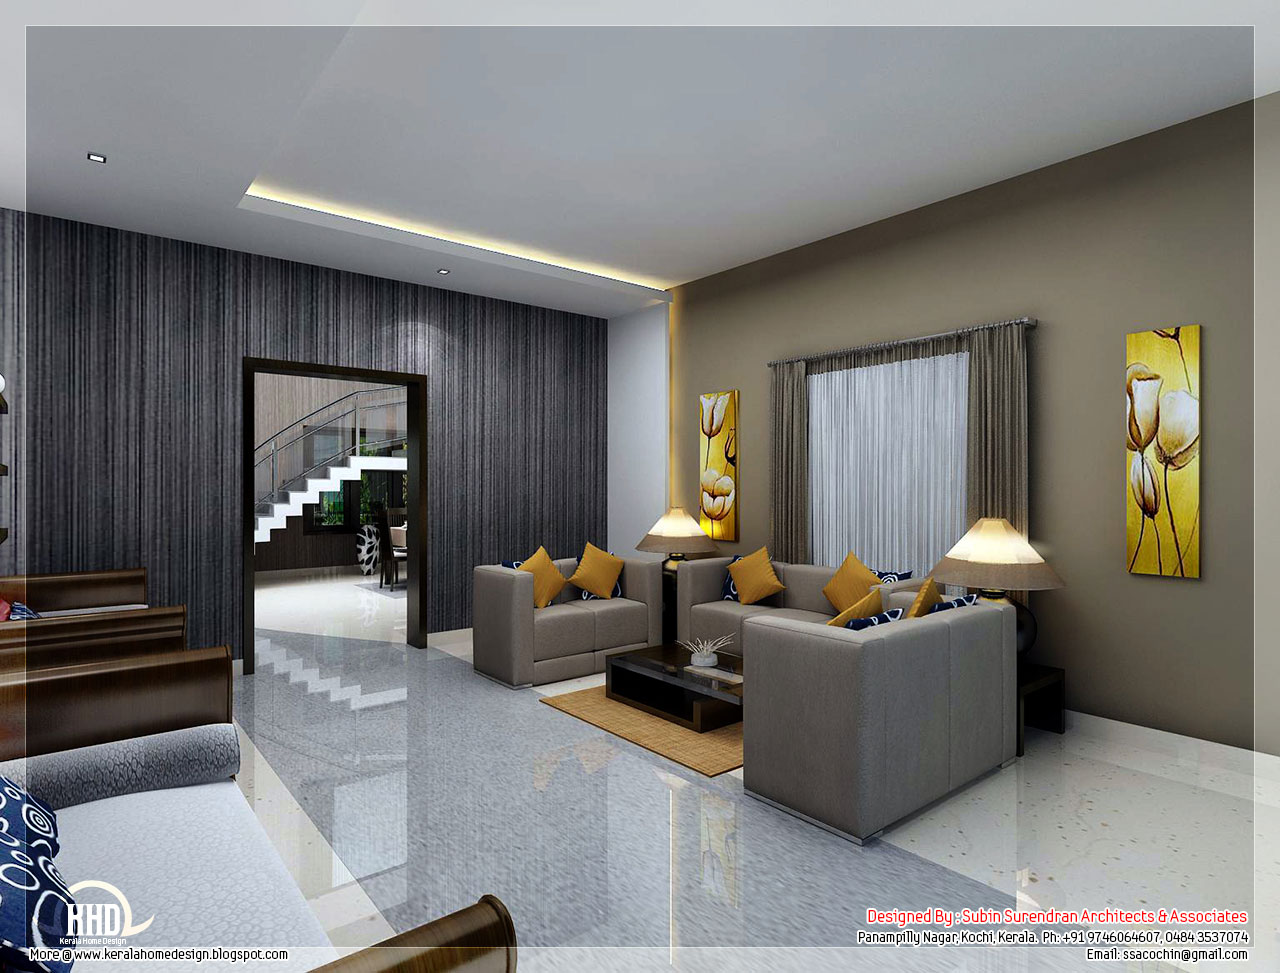 Awesome 3d interior renderings kerala home design and for House designs interior photos